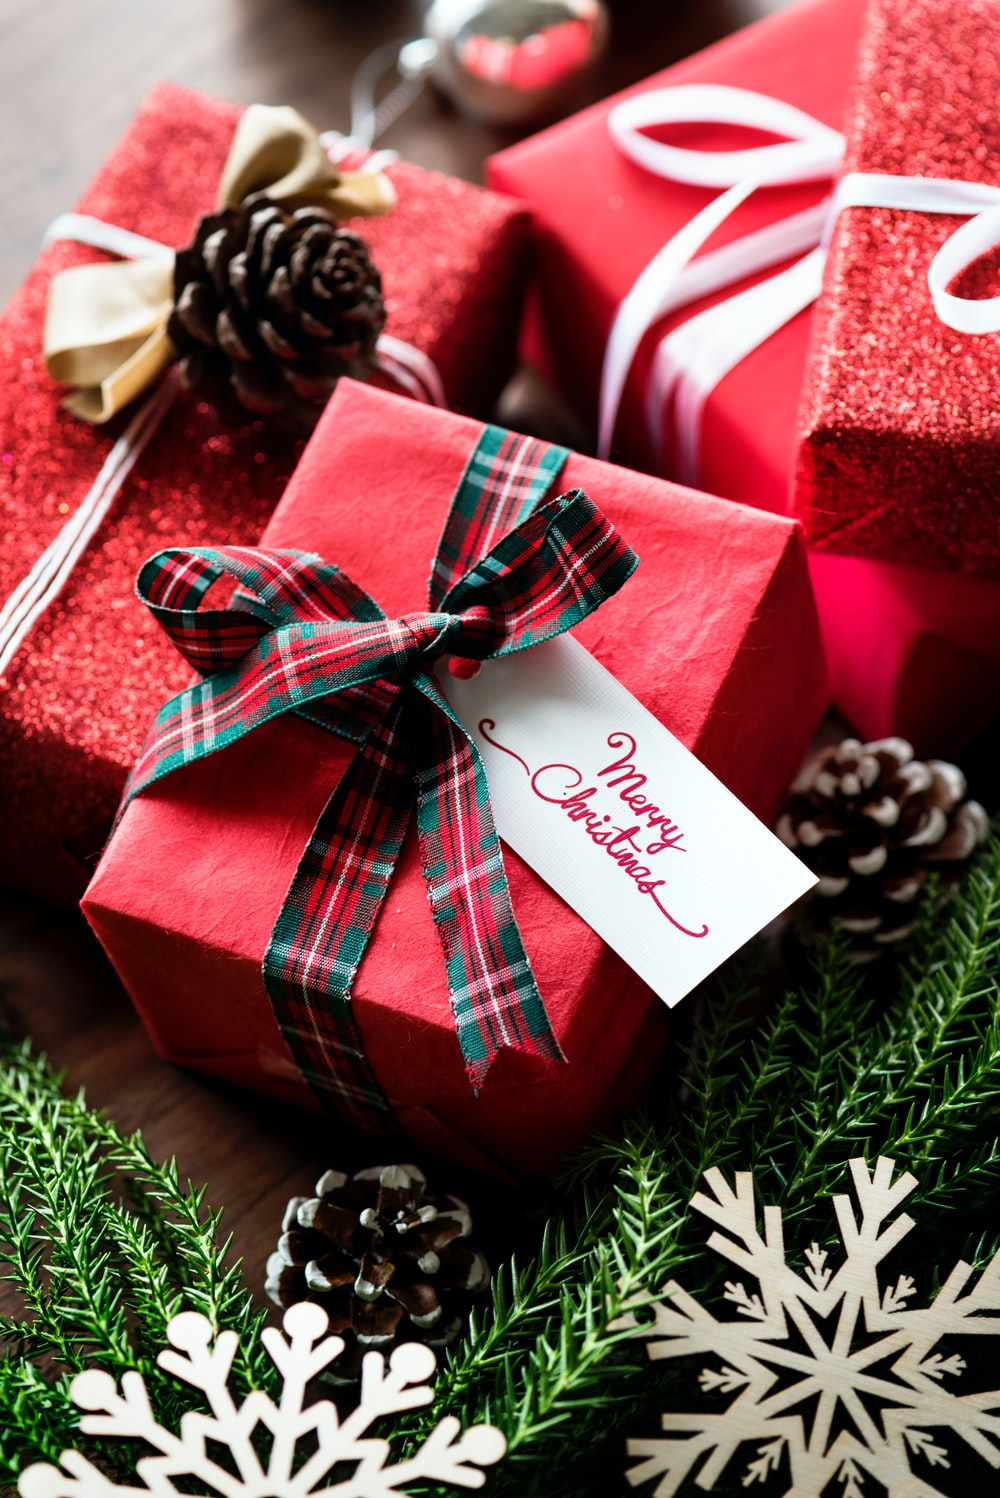 Gift present christmas and parcel hd photo by rawpixel gift present christmas and parcel hd photo by rawpixel rawpixel on unsplash negle Gallery